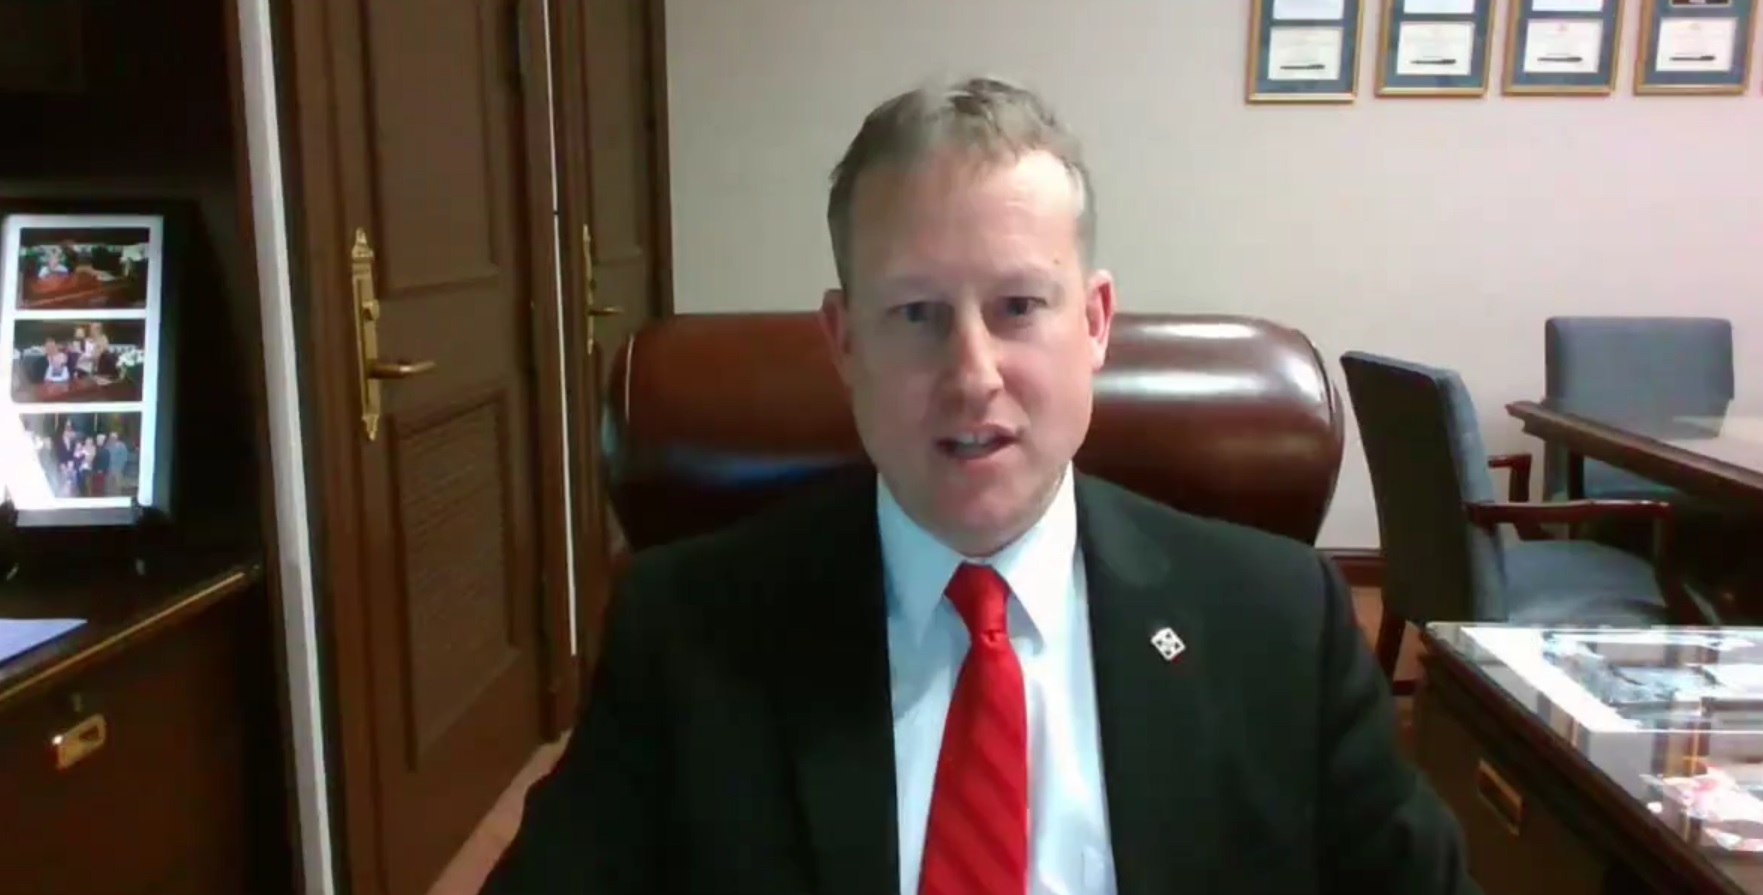 State Sen. Ryan Aument speaks during an online town hall on Tuesday, March 2, 2021.